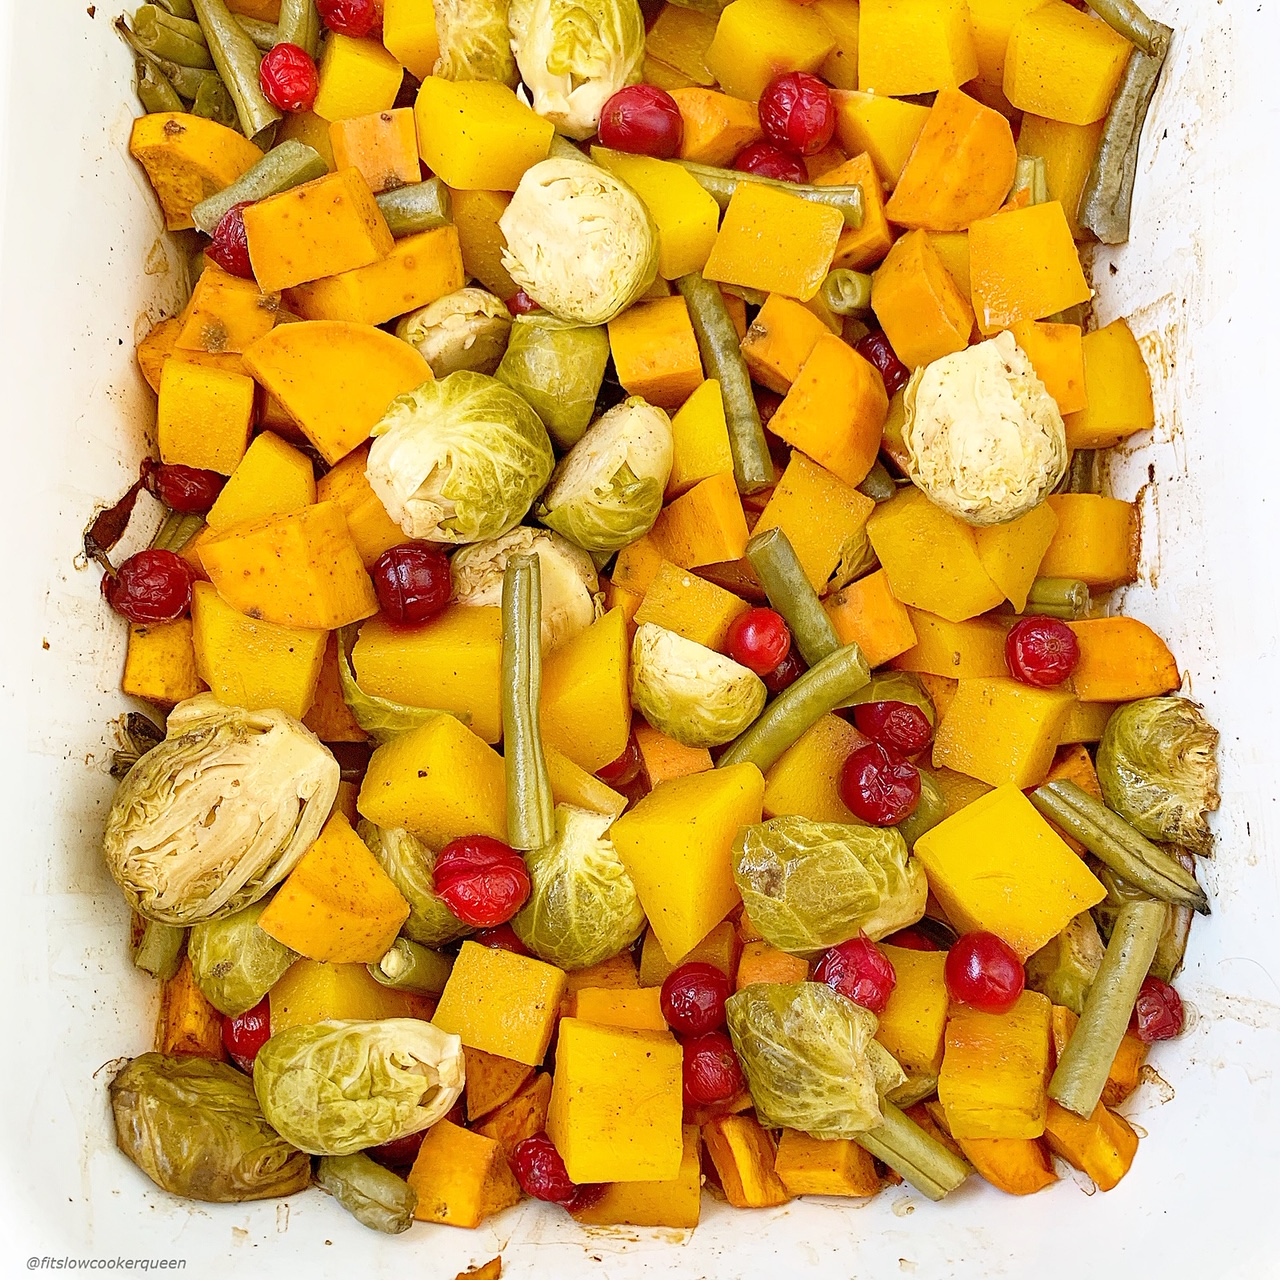 This healthy side dish is perfect for your next holiday gathering or family dinner. Grab your favorite vegetable for this slow cooker or Instant Pot recipe.